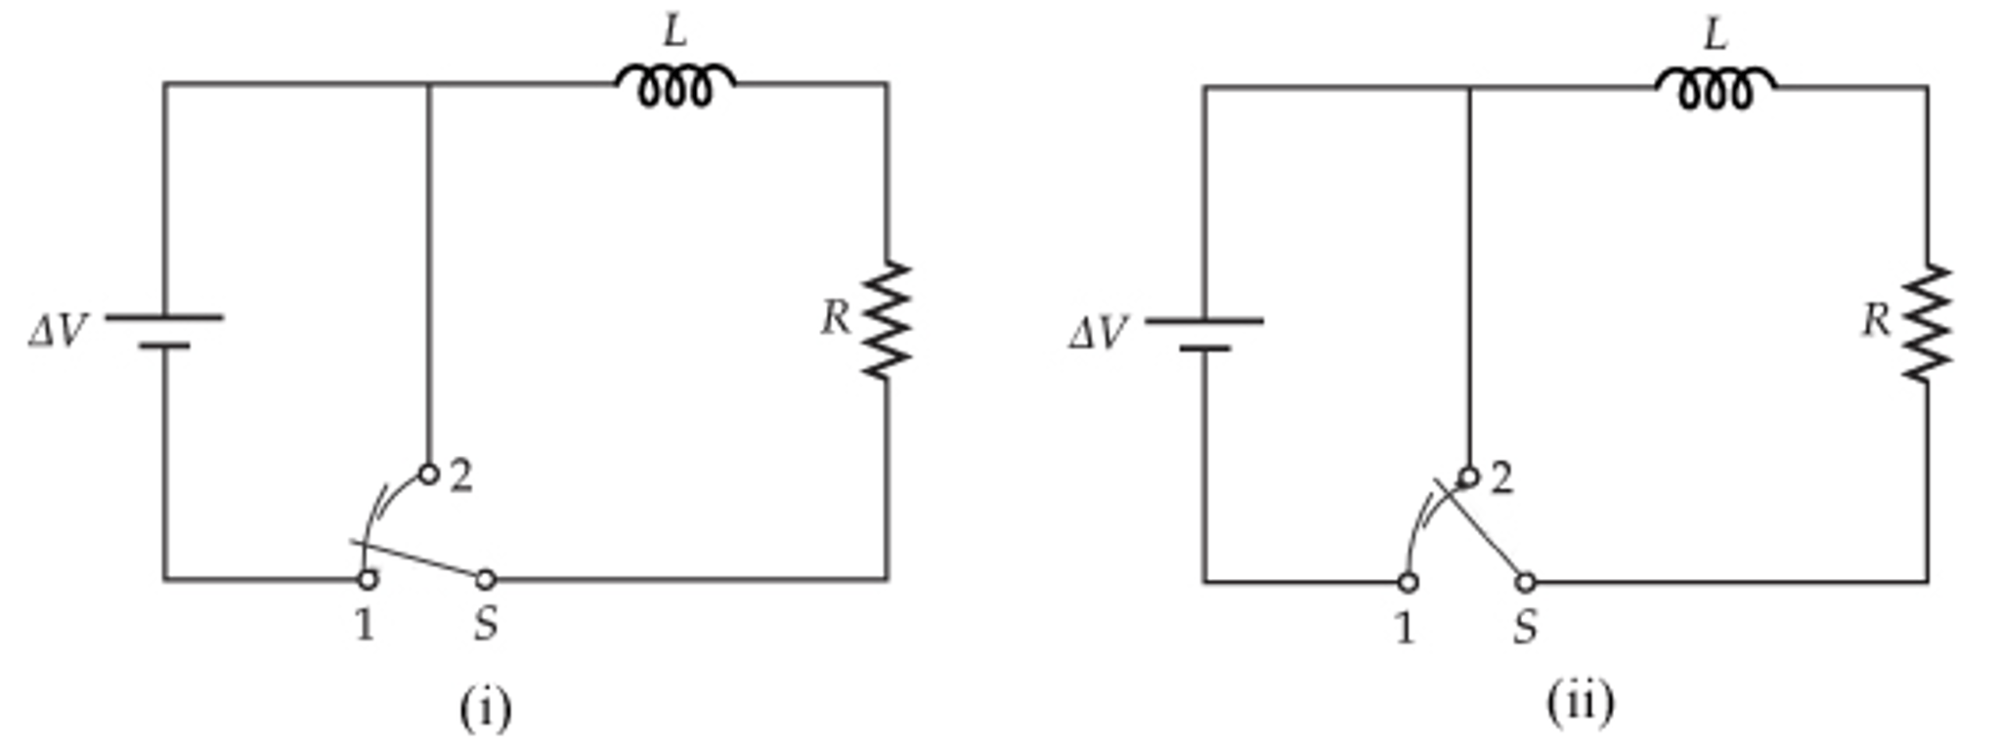 hight resolution of a 224 v battery an inductor an